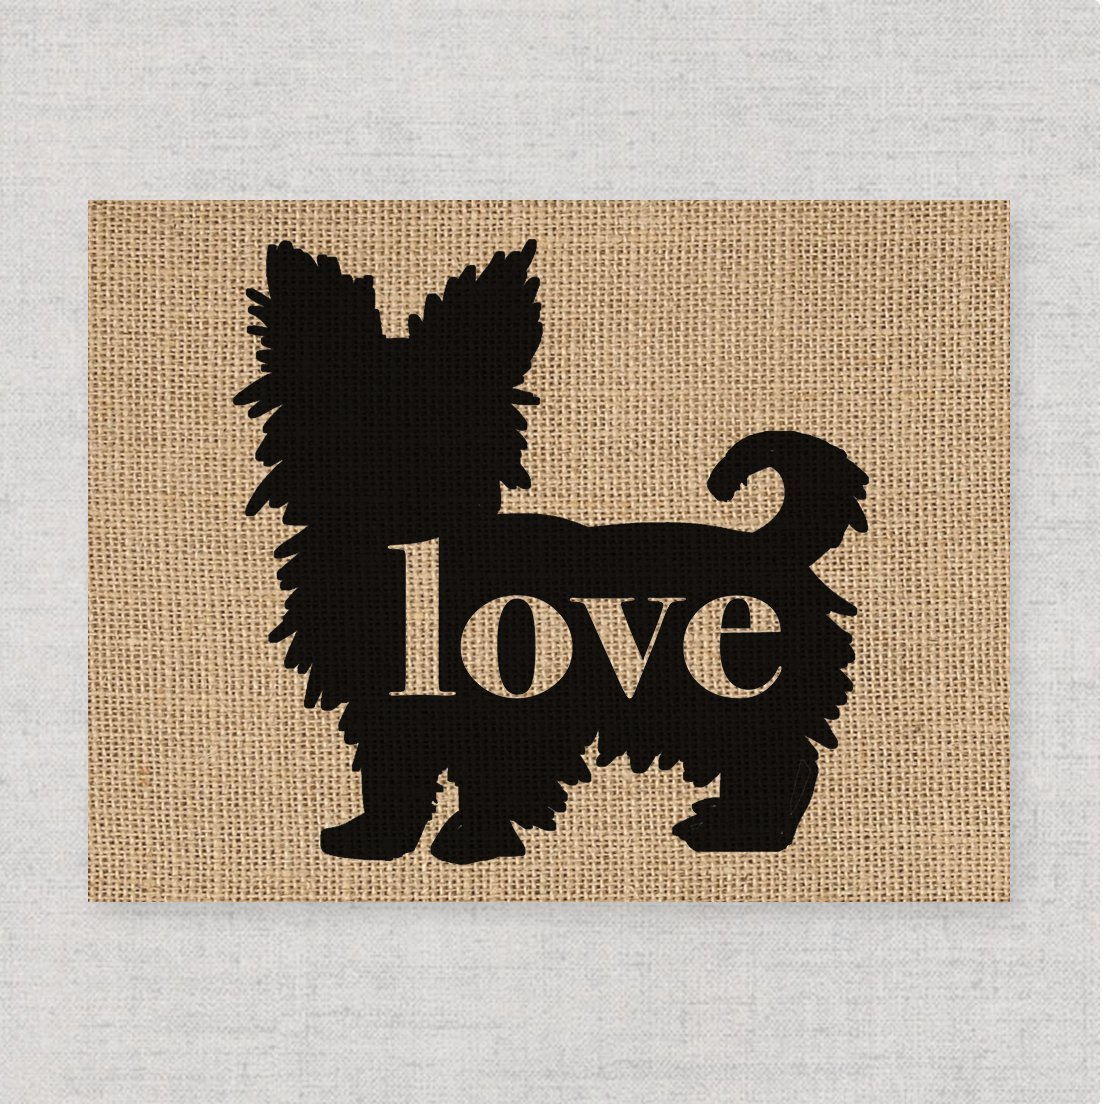 Yorkshire Terrier (Yorkie) Love (Short Haired): An Unframed 8x10 Dog Breed Wall Art Print on Your Choice of Fine art Paper or Laminated Burlap (Can be Personalized)